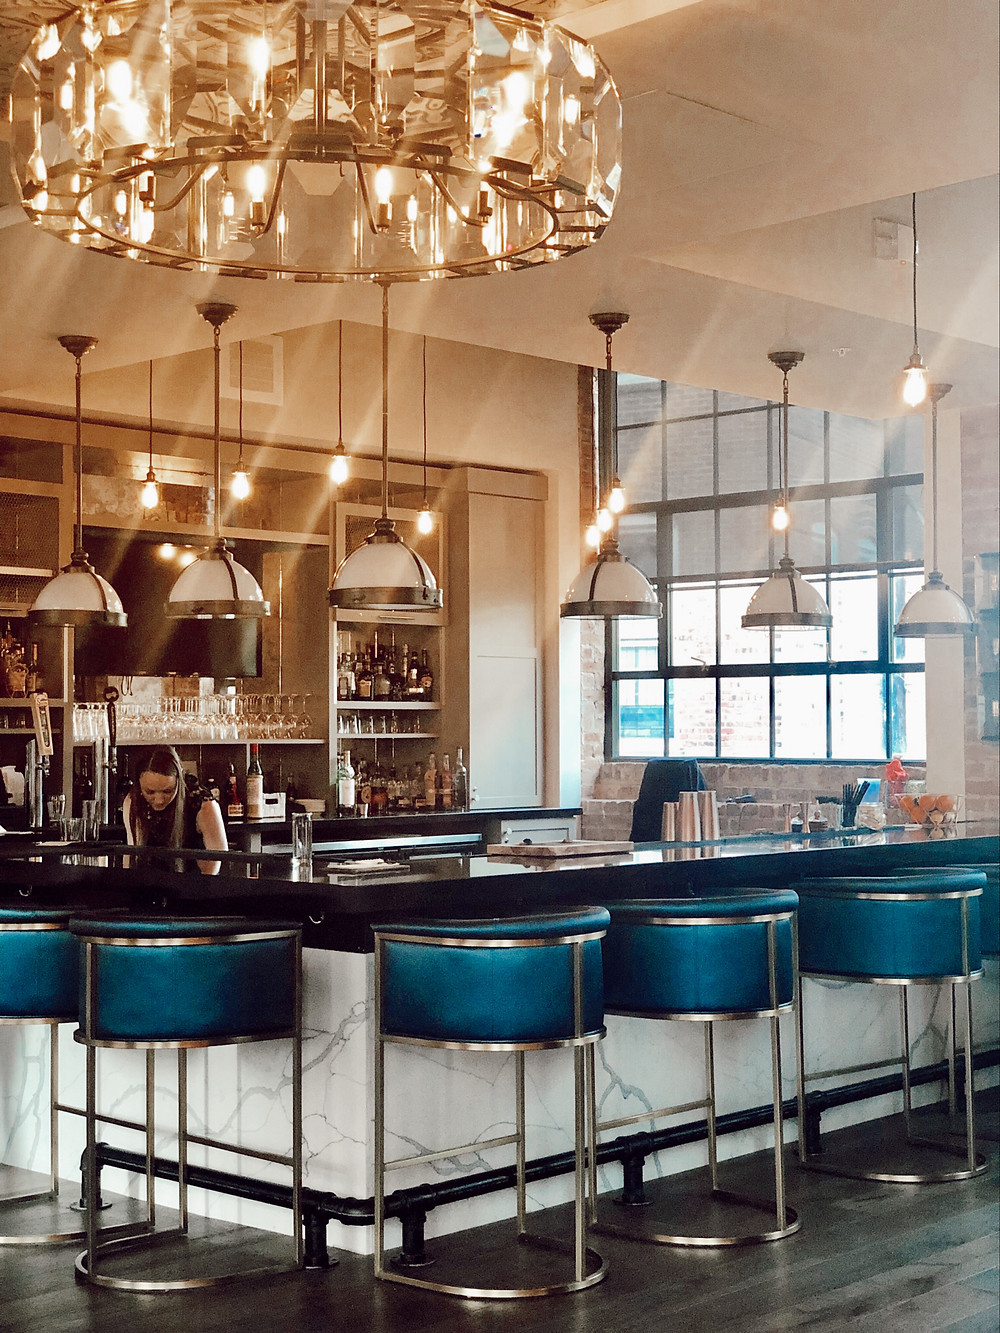 Blue bar stools, white pendant lights over Workshop Bar at Foundry Hotel Asheville NC